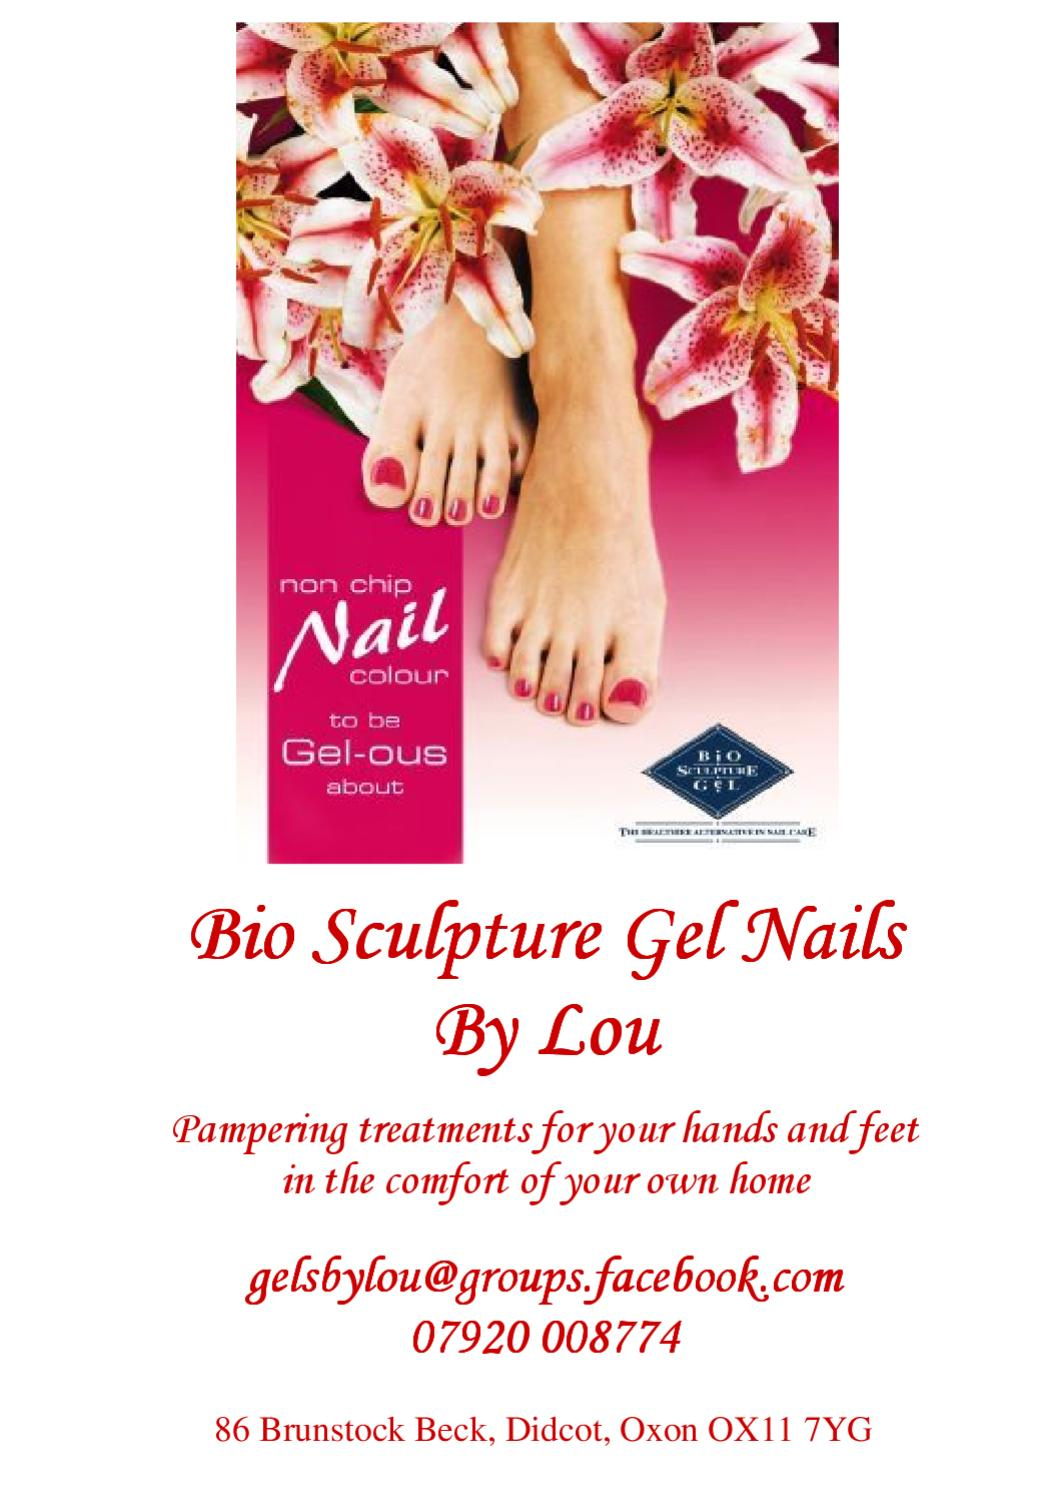 Bio Sculpture Gel Nails by Lou by Lou Hatter - issuu